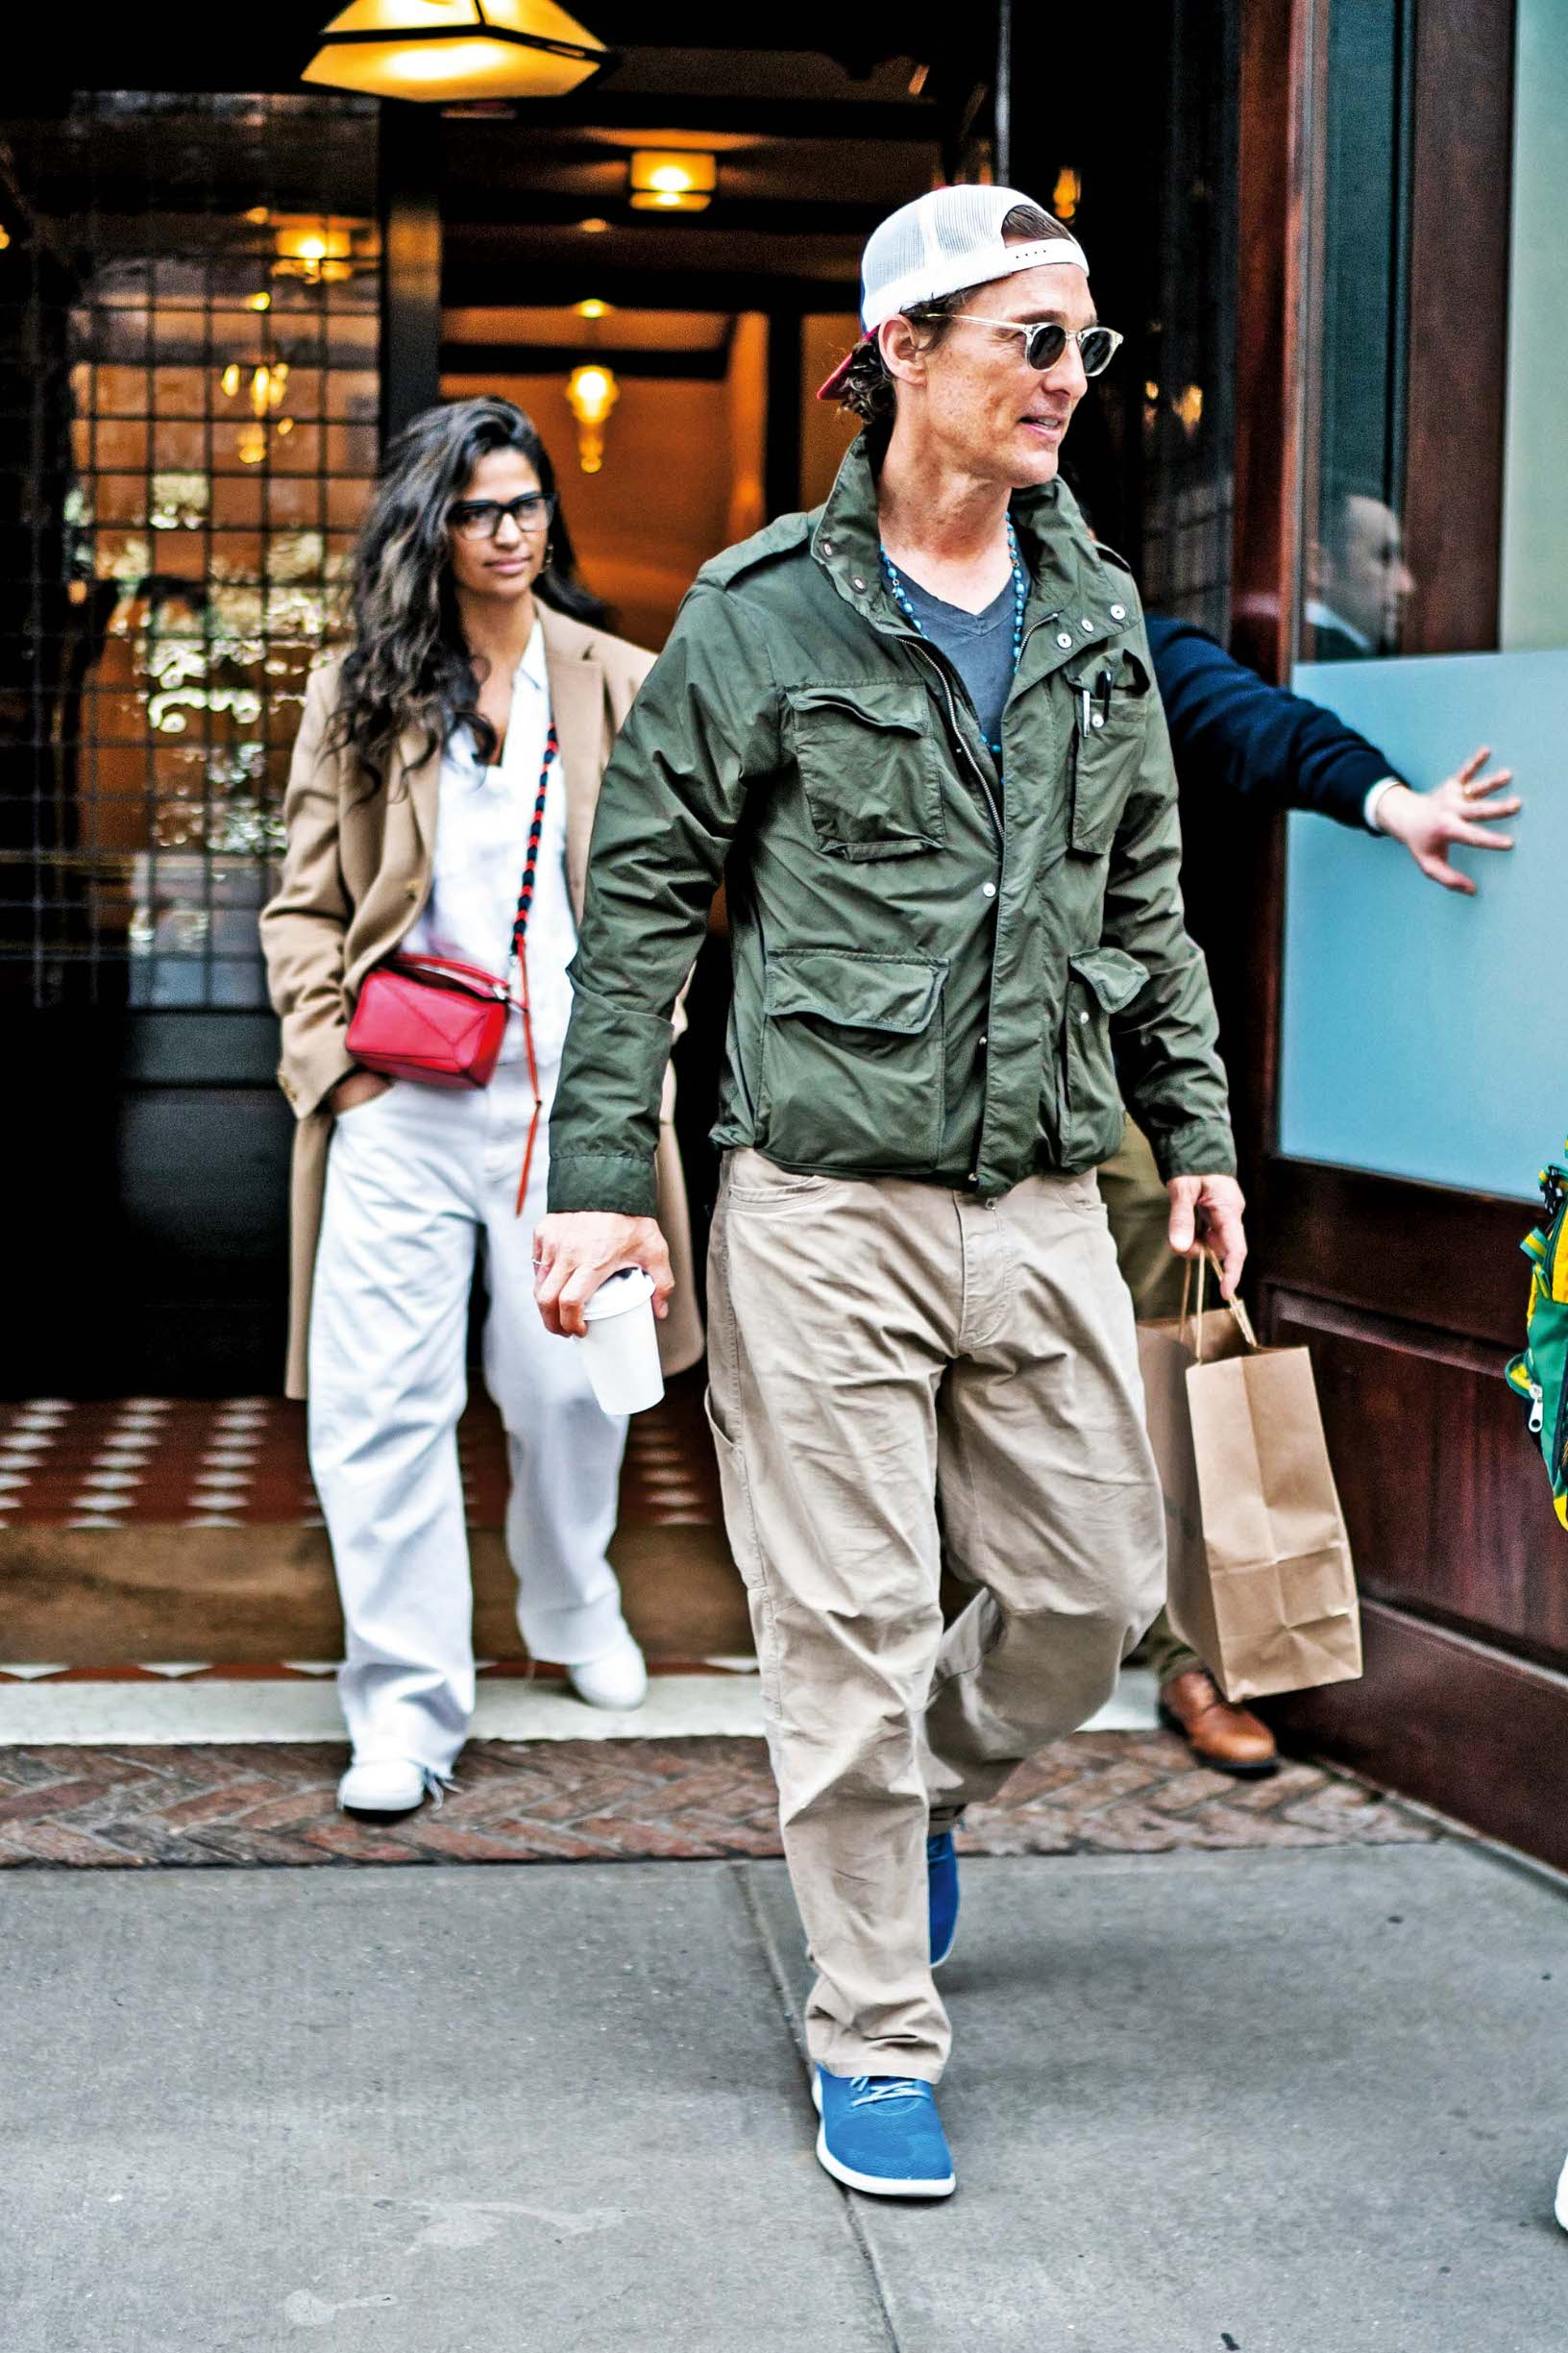 NEW YORK, NEW YORK - APRIL 18: Camila Alves and Matthew McConaughey are seen in Tribeca on April 18, 2019 in New York City. (Photo by Gotham/GC Images)